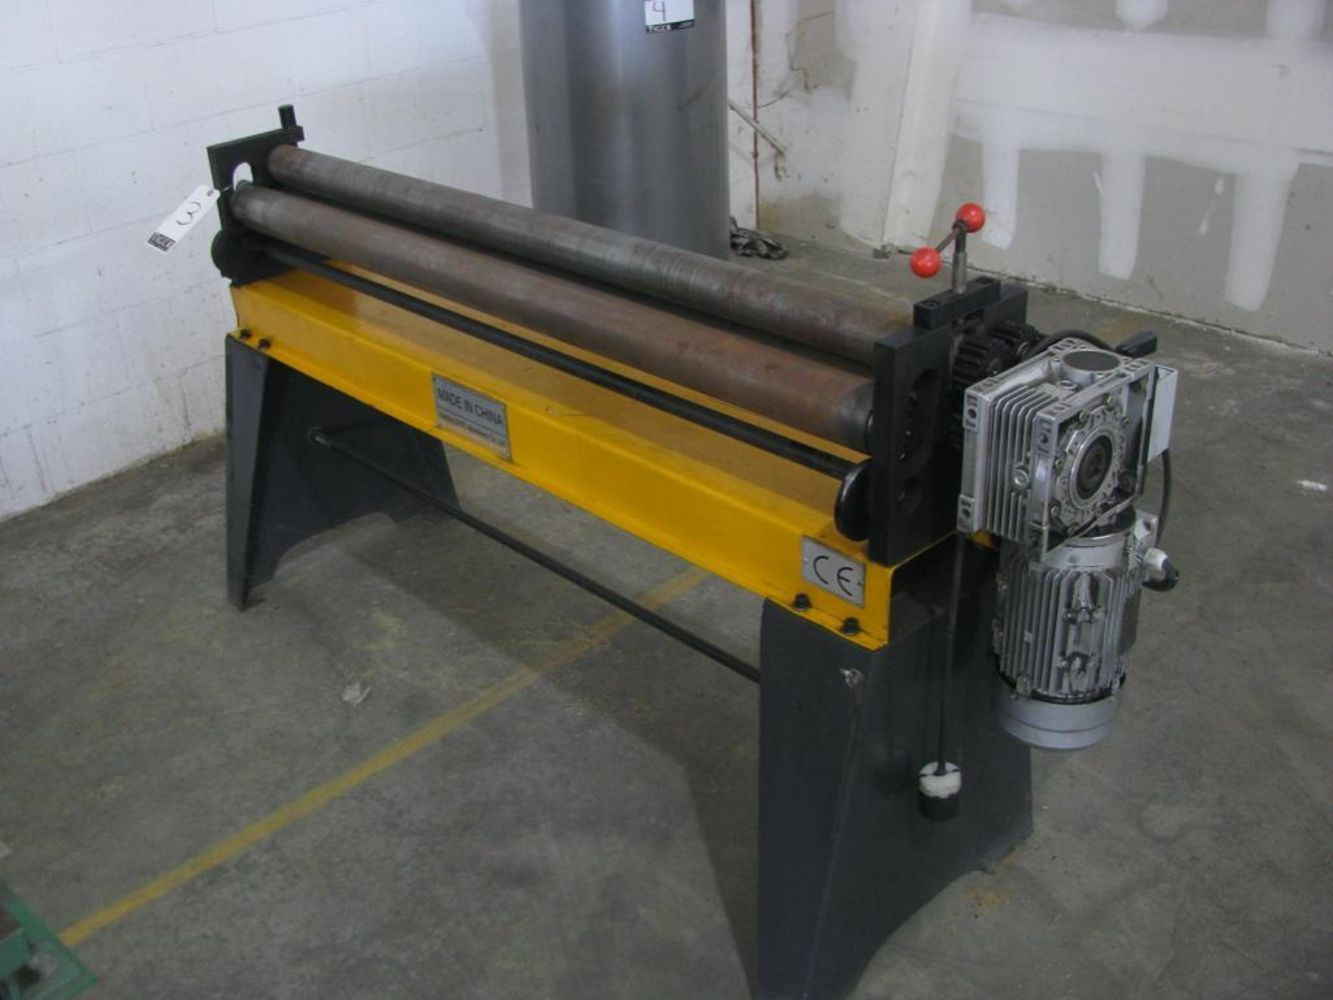 CNC STRUCTURAL STEEL & METAL FABRICATION EQUIPMENT & SUPPORT